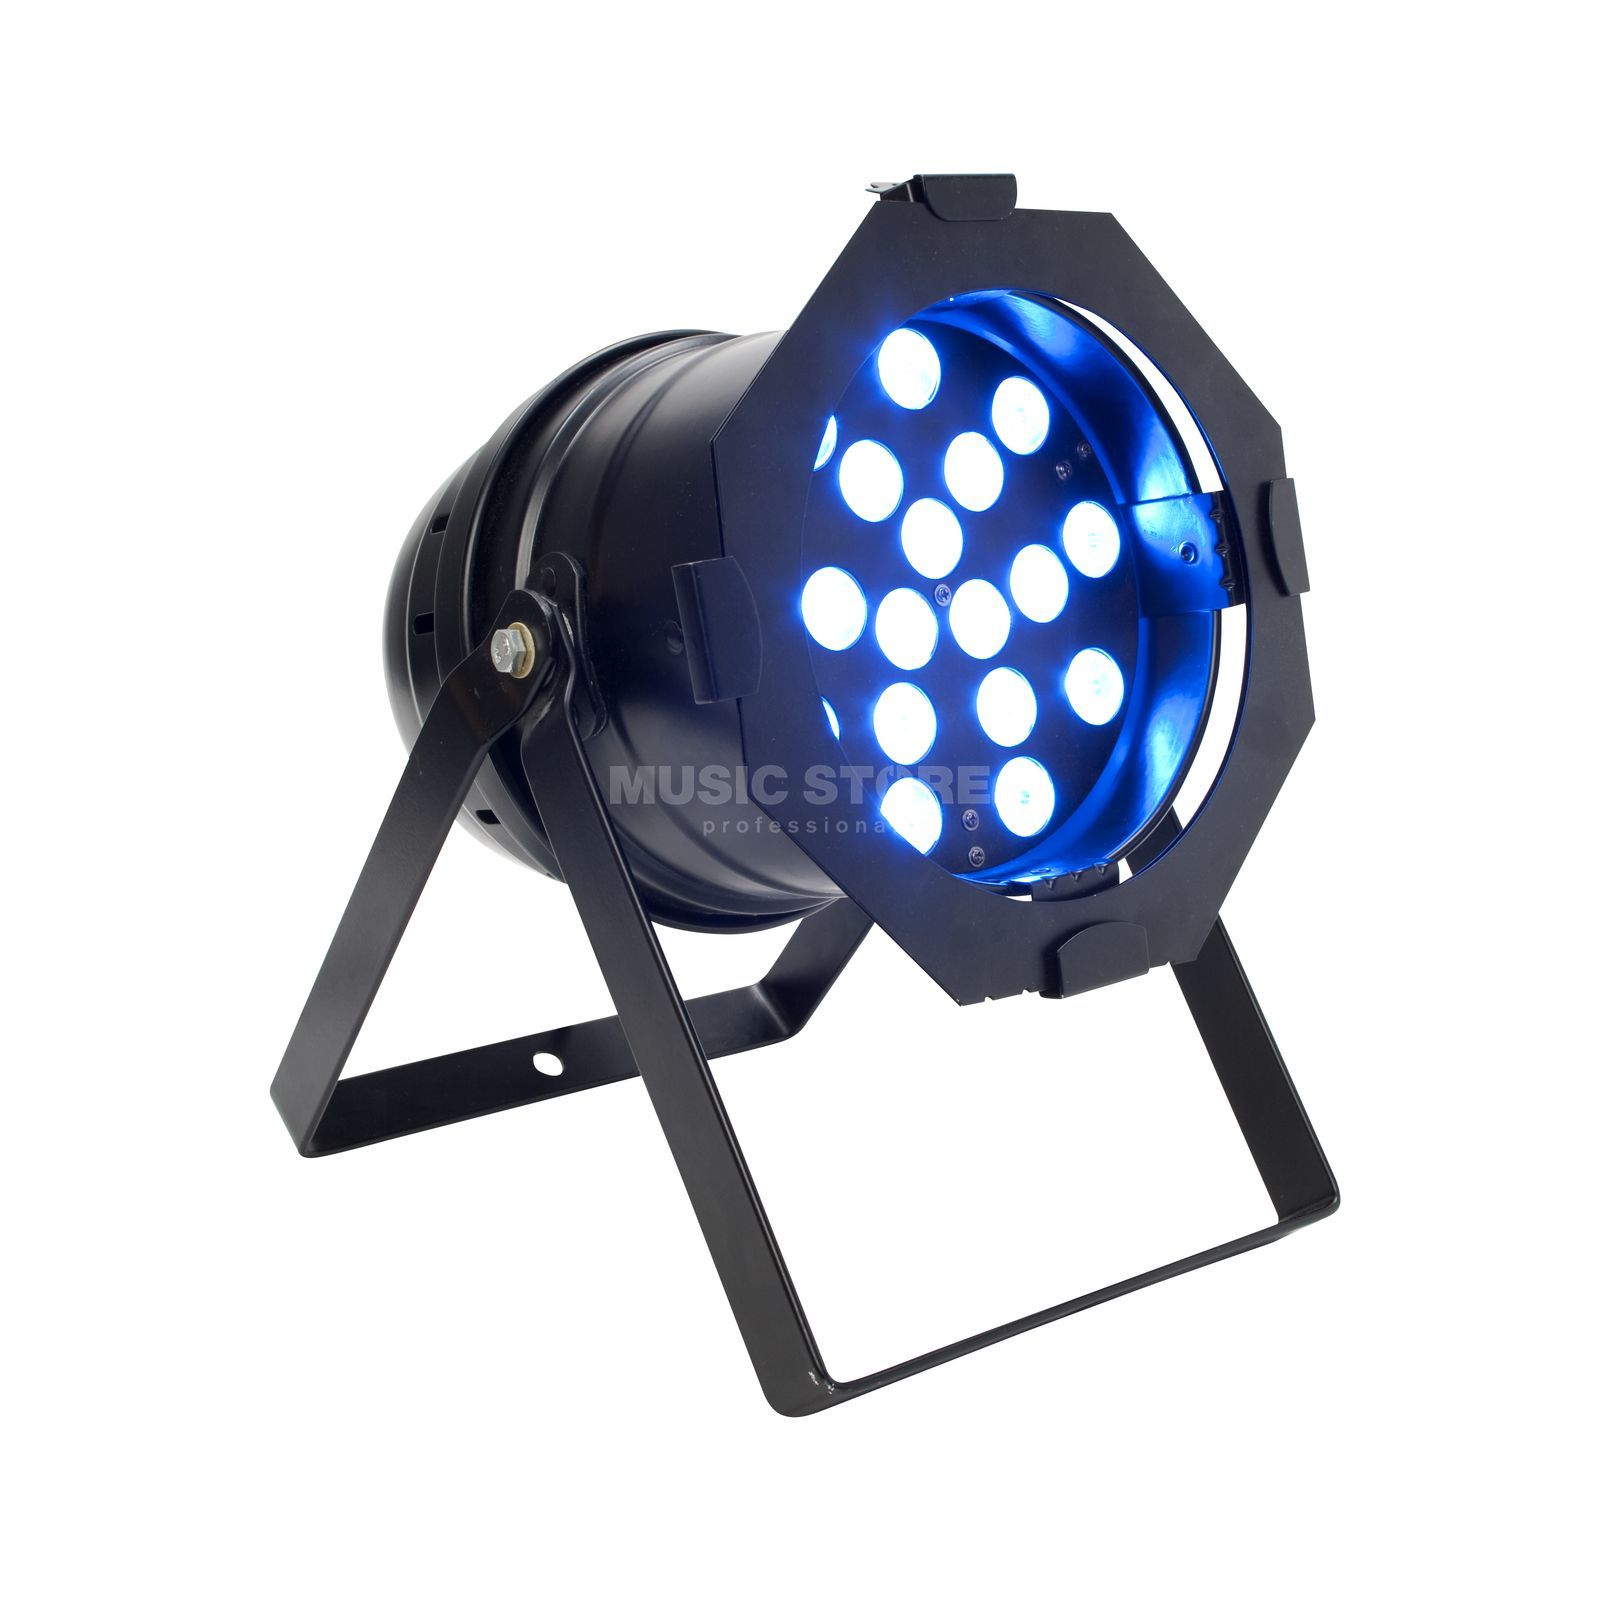 lightmaXX Platinum LED PAR 64 Tri-LED BK 18 x 3 Watt, Black Produktbillede